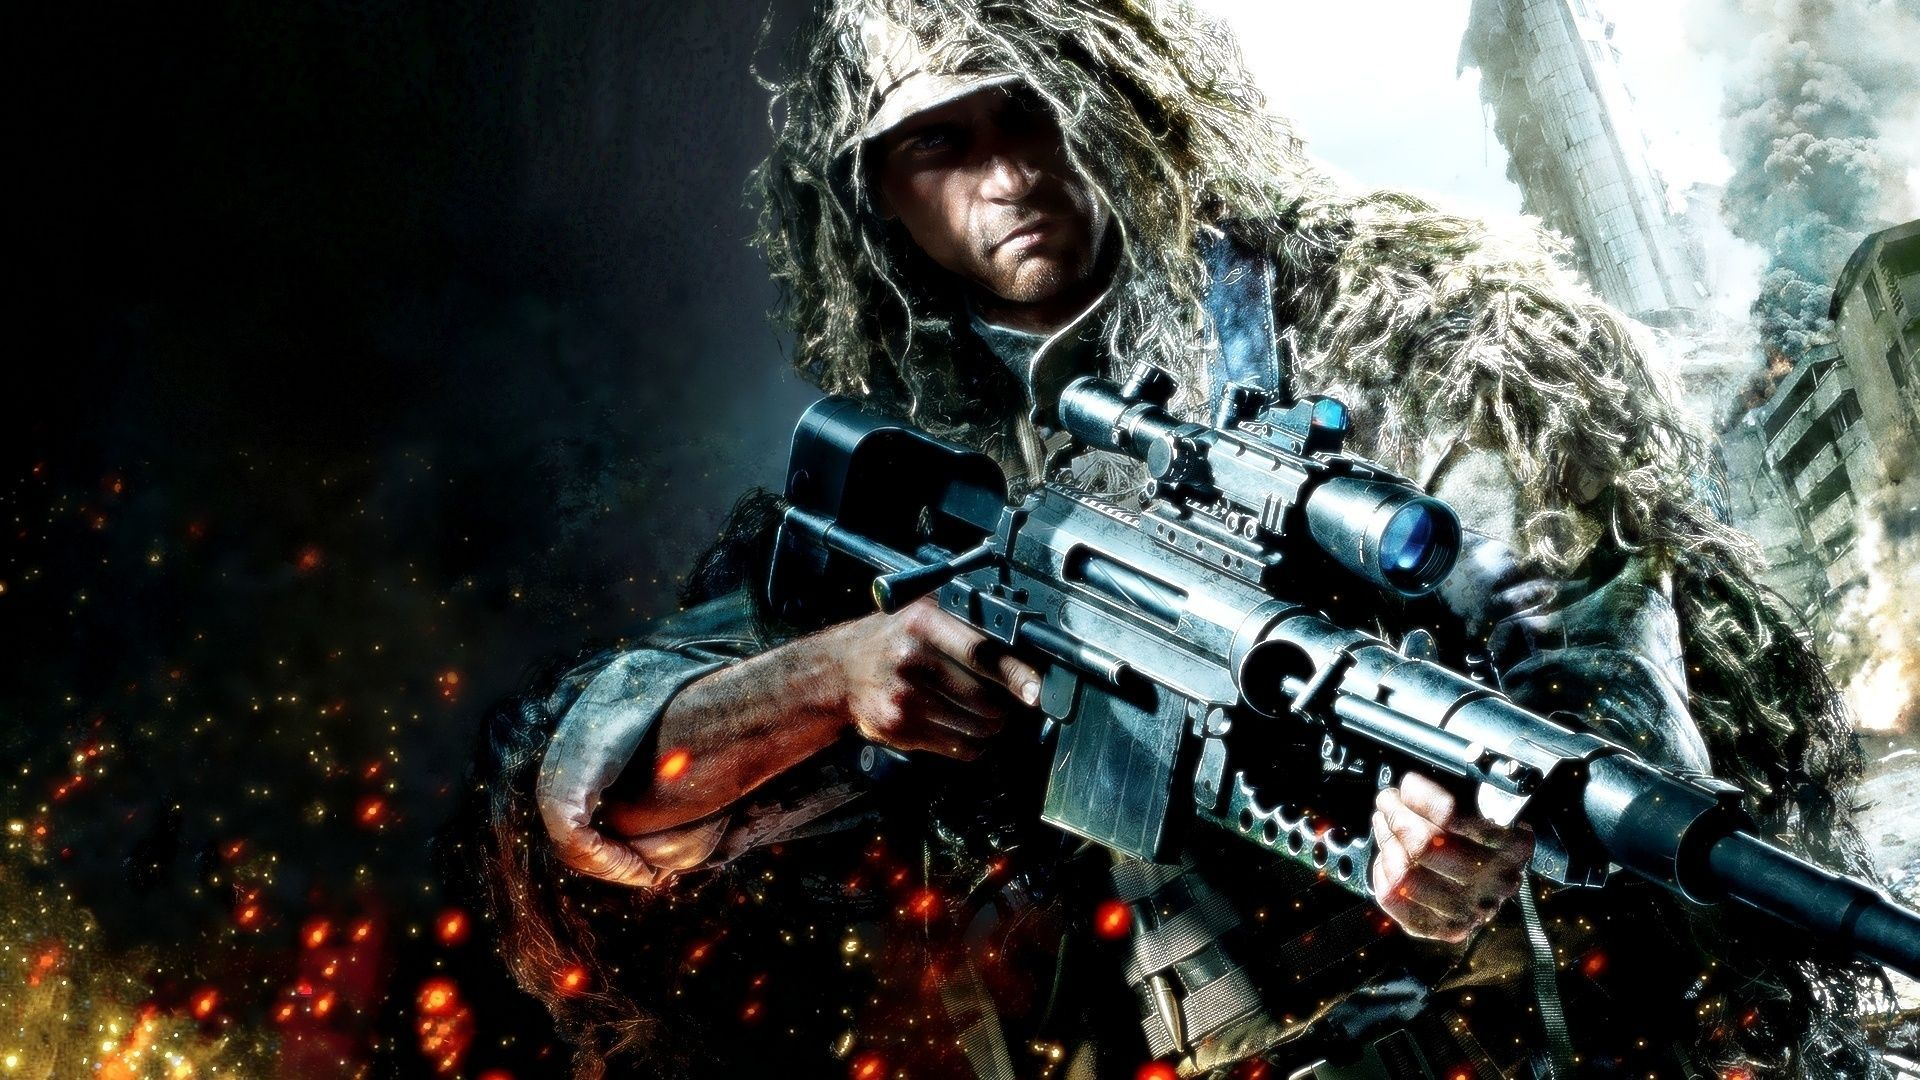 Warrior Game Hd 2015 1920 1080 R Wallpapers In 2020 Best Gaming Wallpapers Military Wallpaper Army Wallpaper